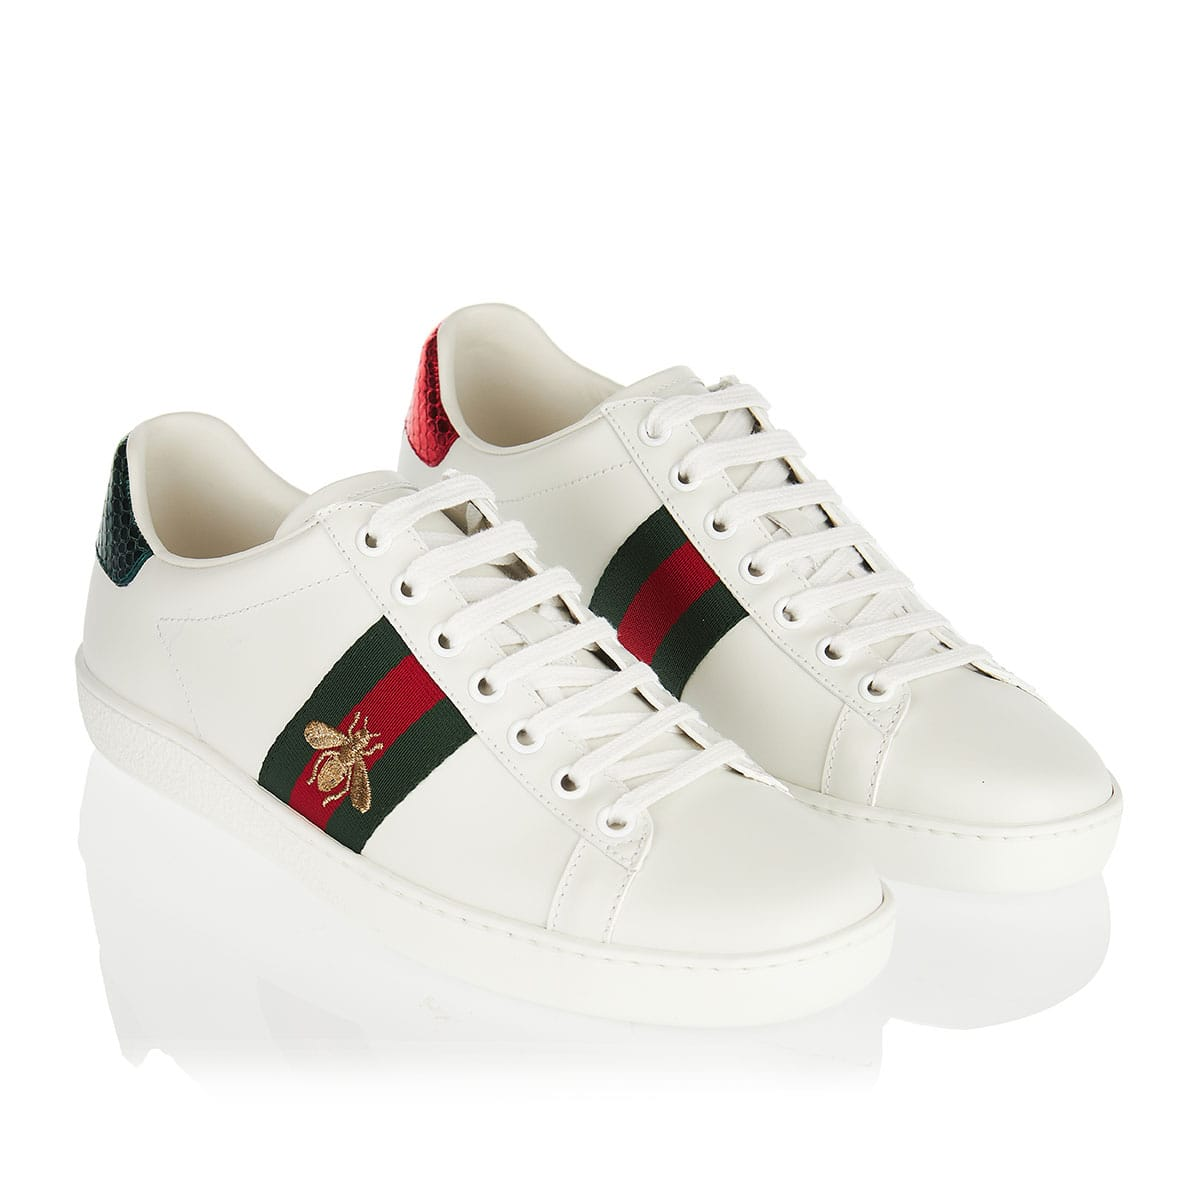 Ace bee leather sneakers